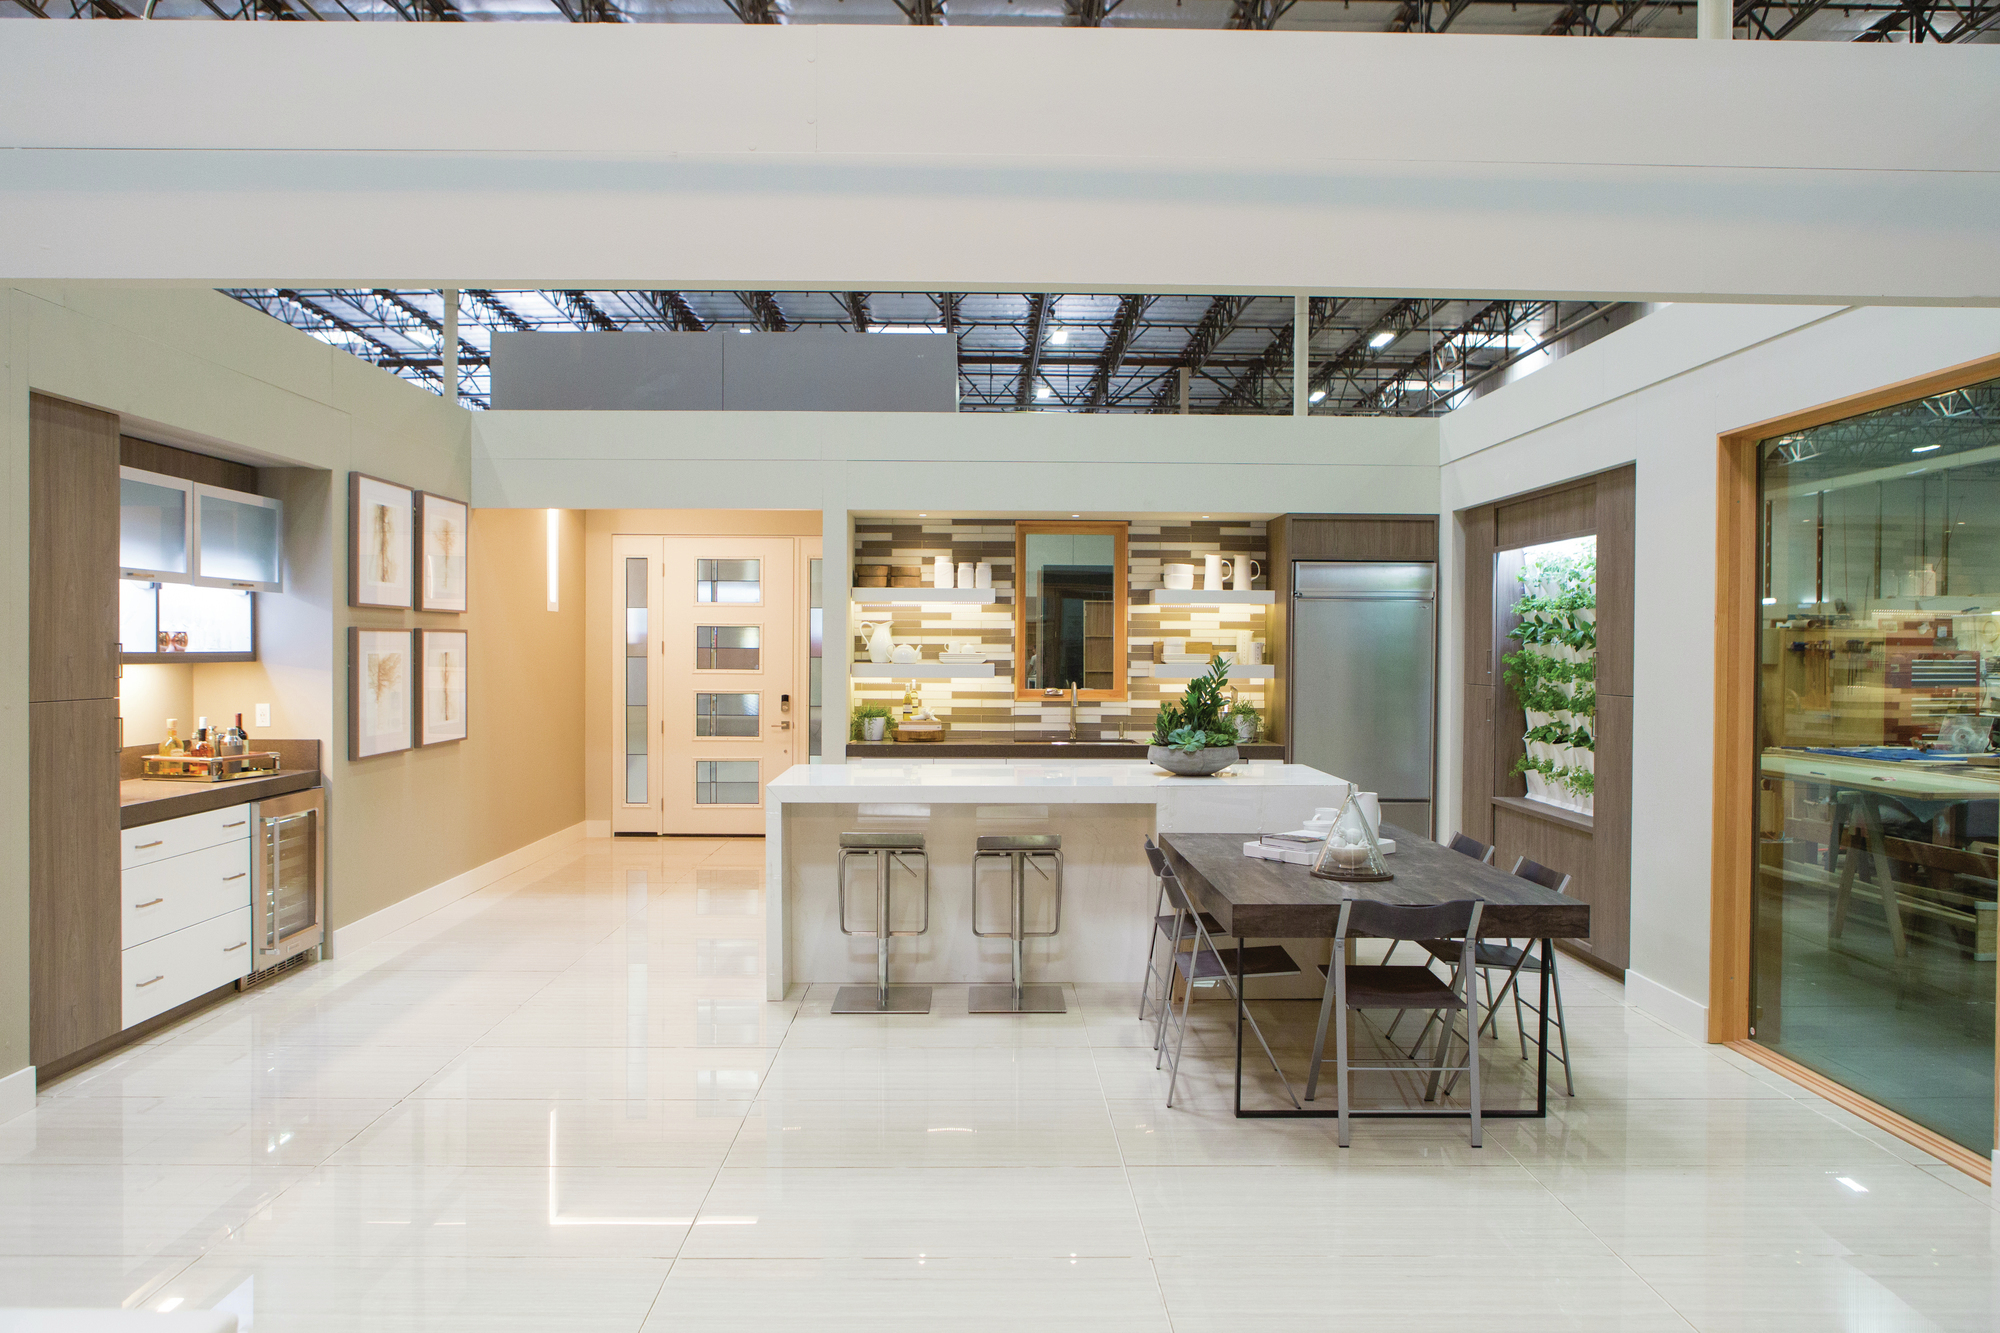 High Performance Products From The Greenbuild KB Home ProjeKt | Builder  Magazine | Green Building, Sustainability, Products, Green Standards, ...